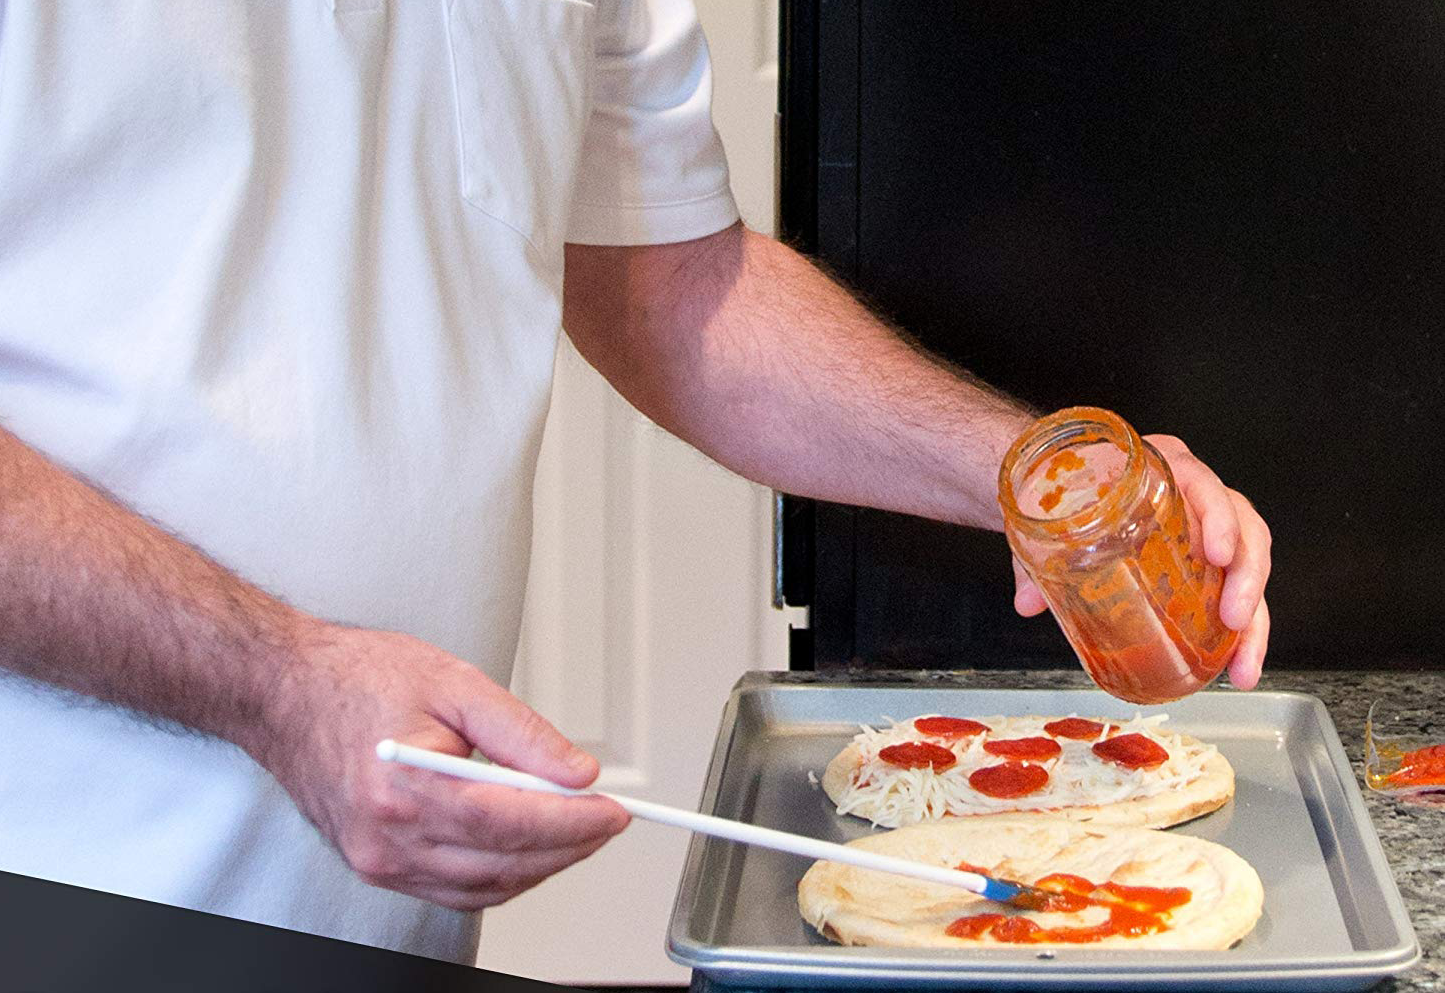 Spatty being used to apply tomato sauce to pizza crust